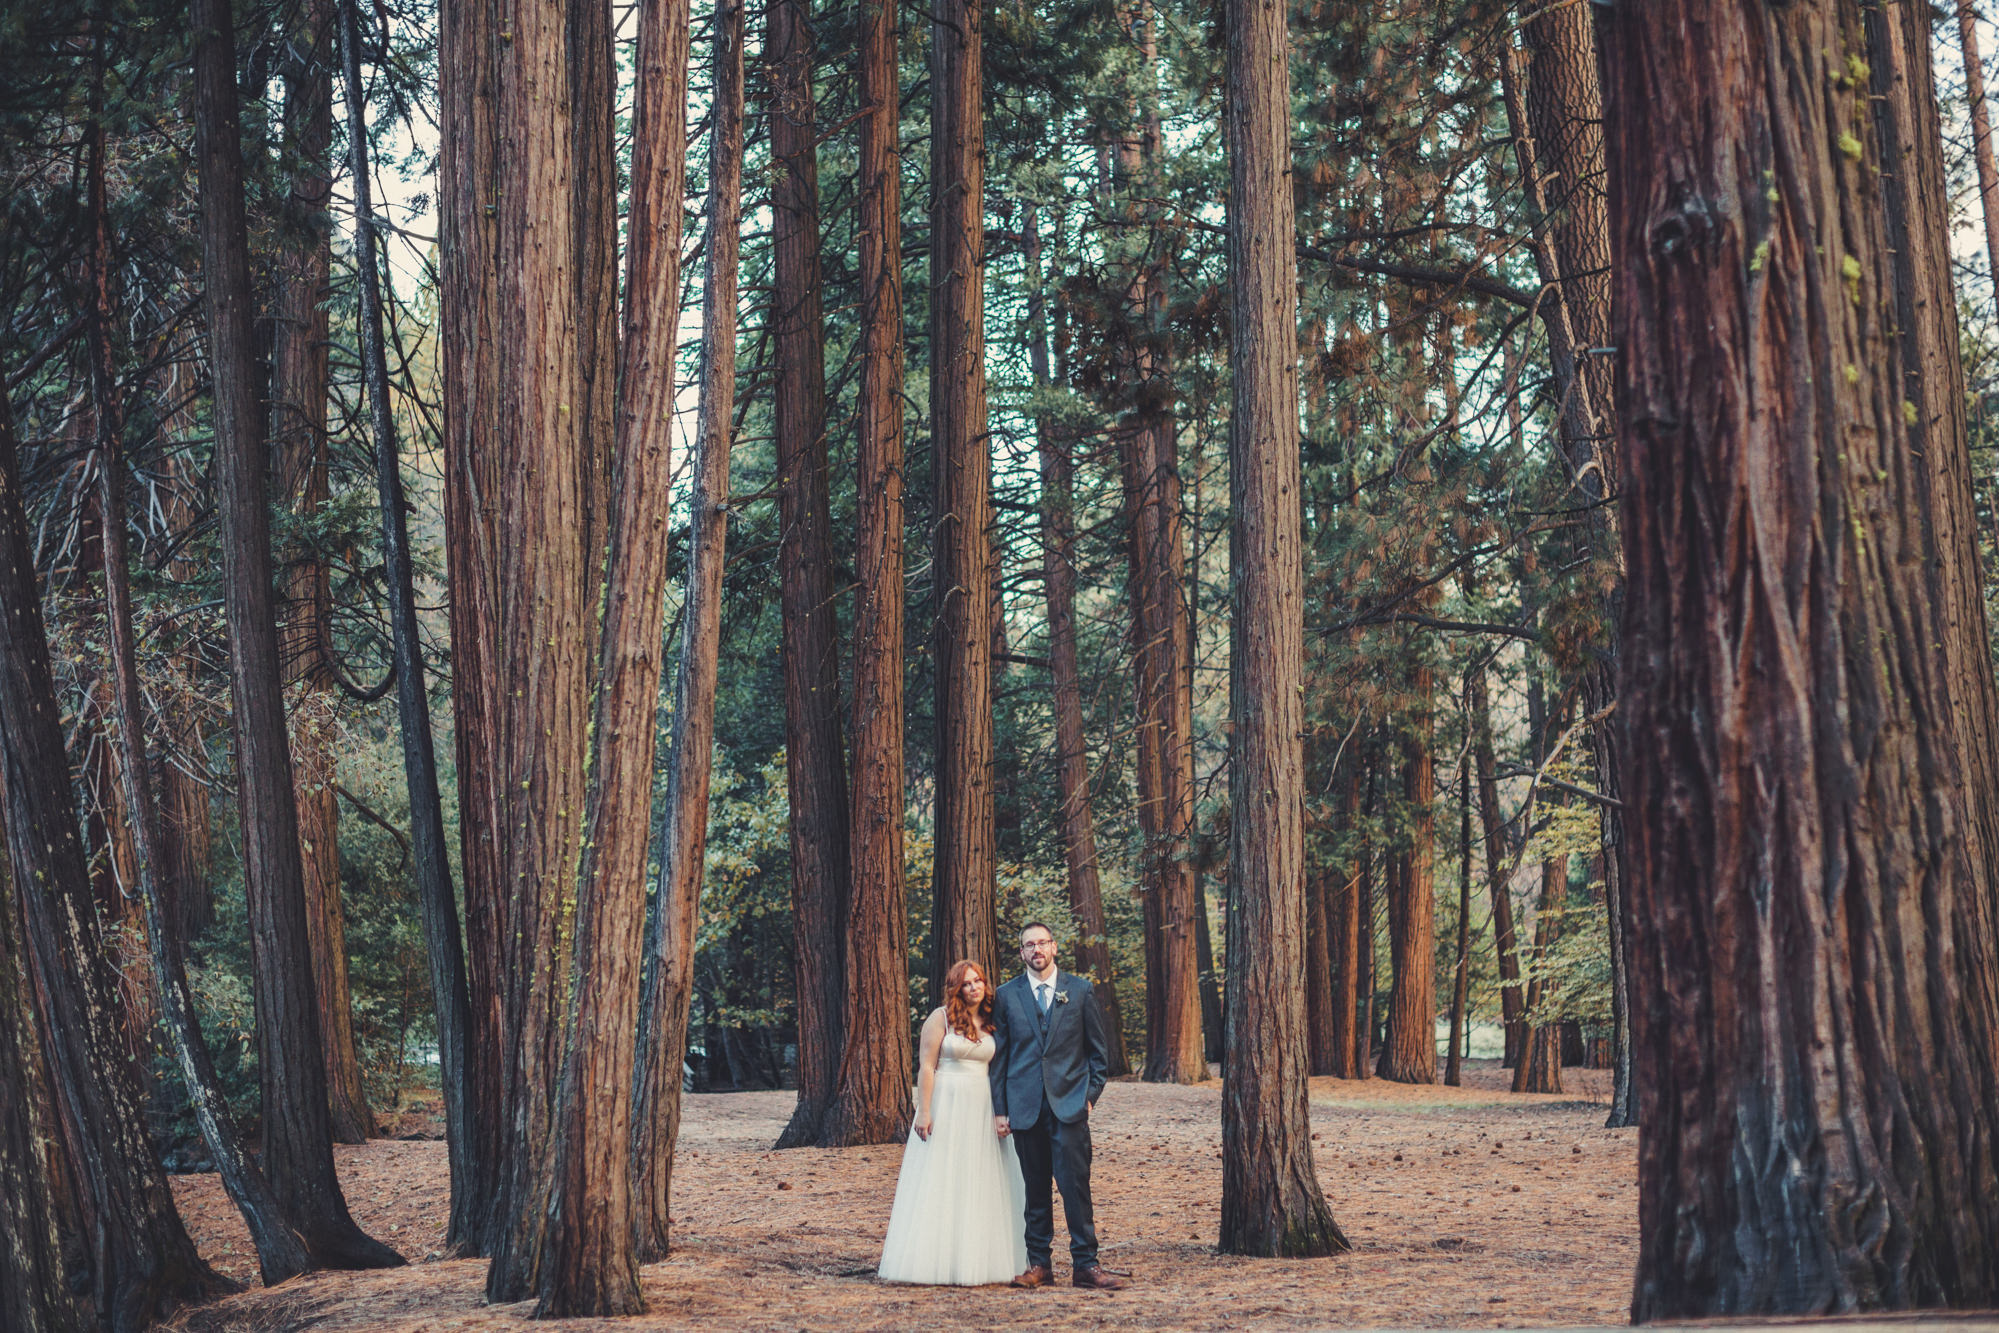 Yosemite wedding ©Anne-Claire Brun 68